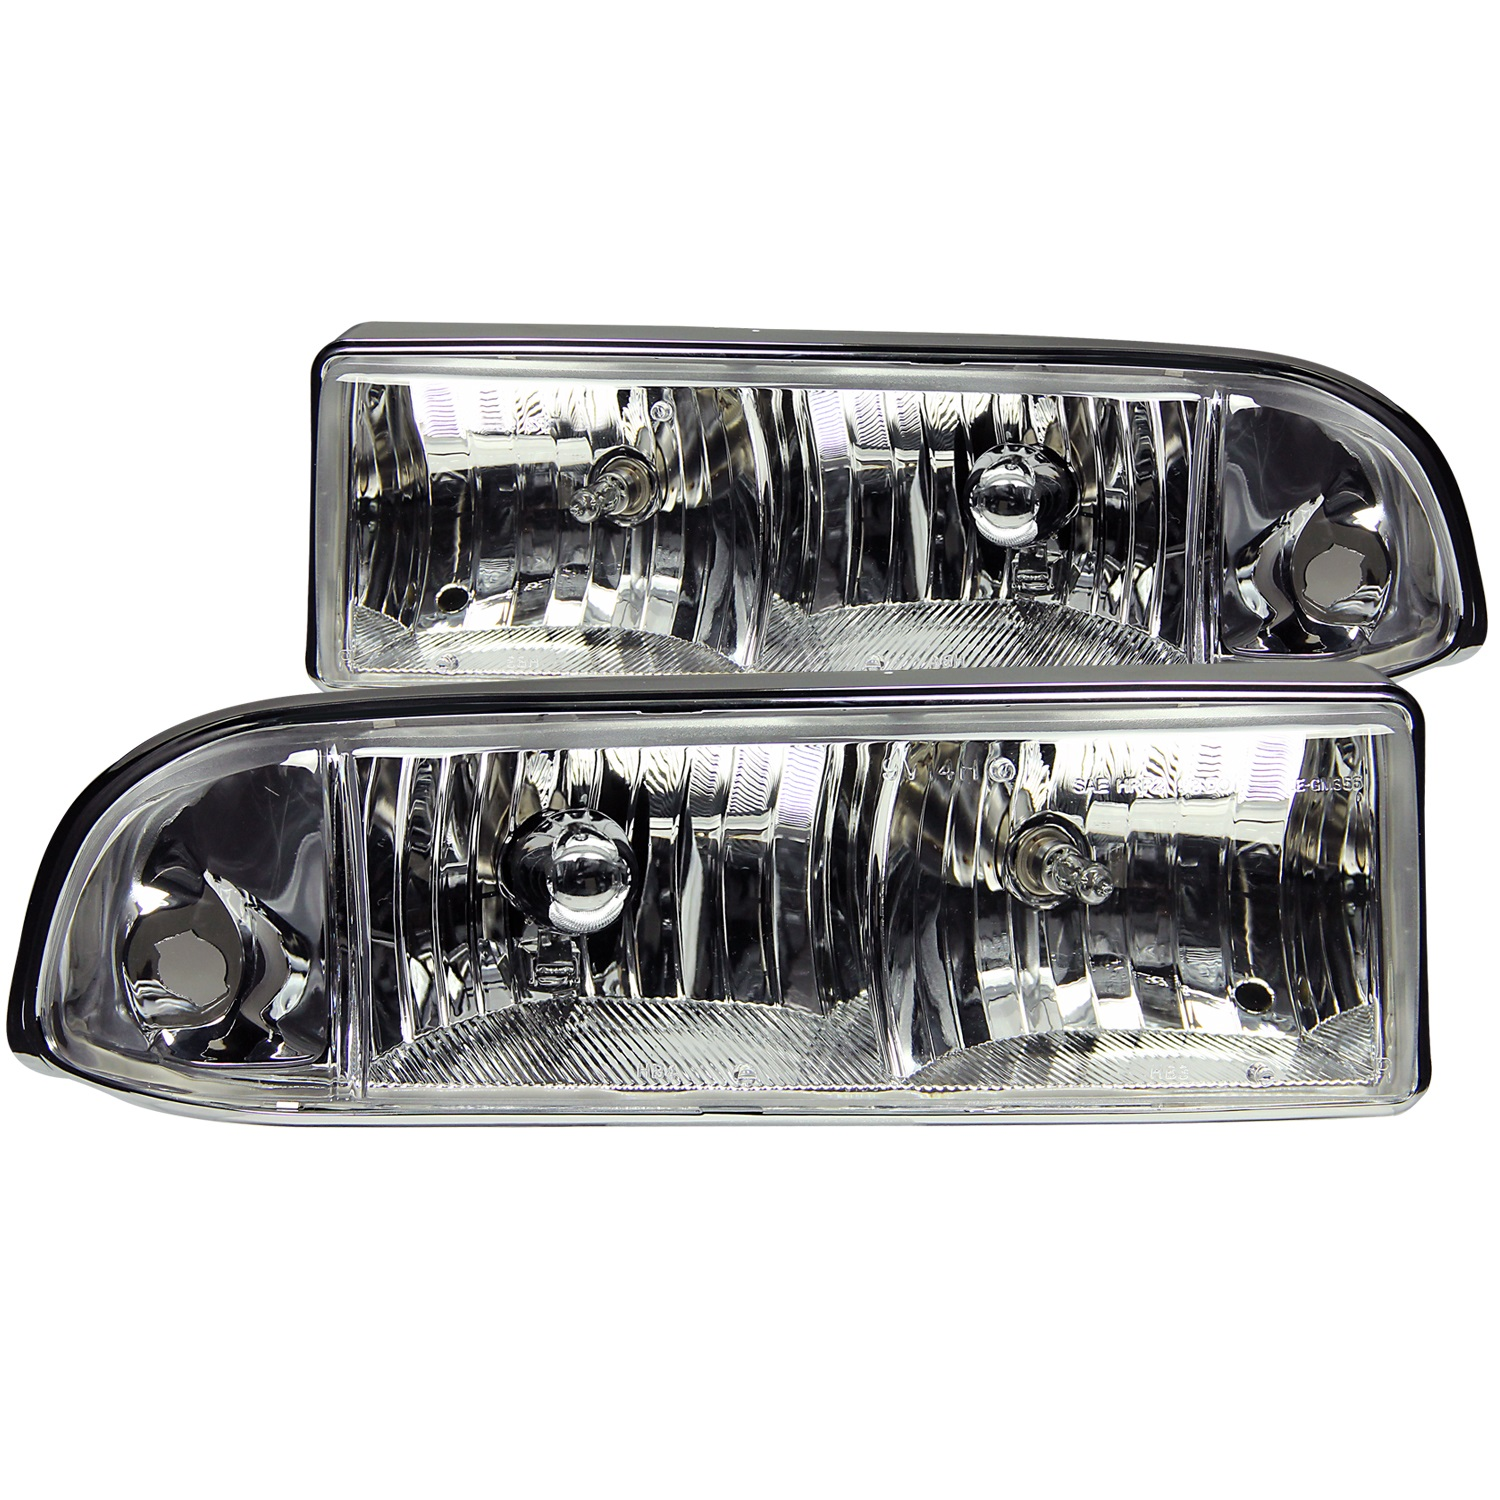 Anzo USA 111014 Crystal Headlight Set Fits 98-04 S10 Blazer S10 Pickup